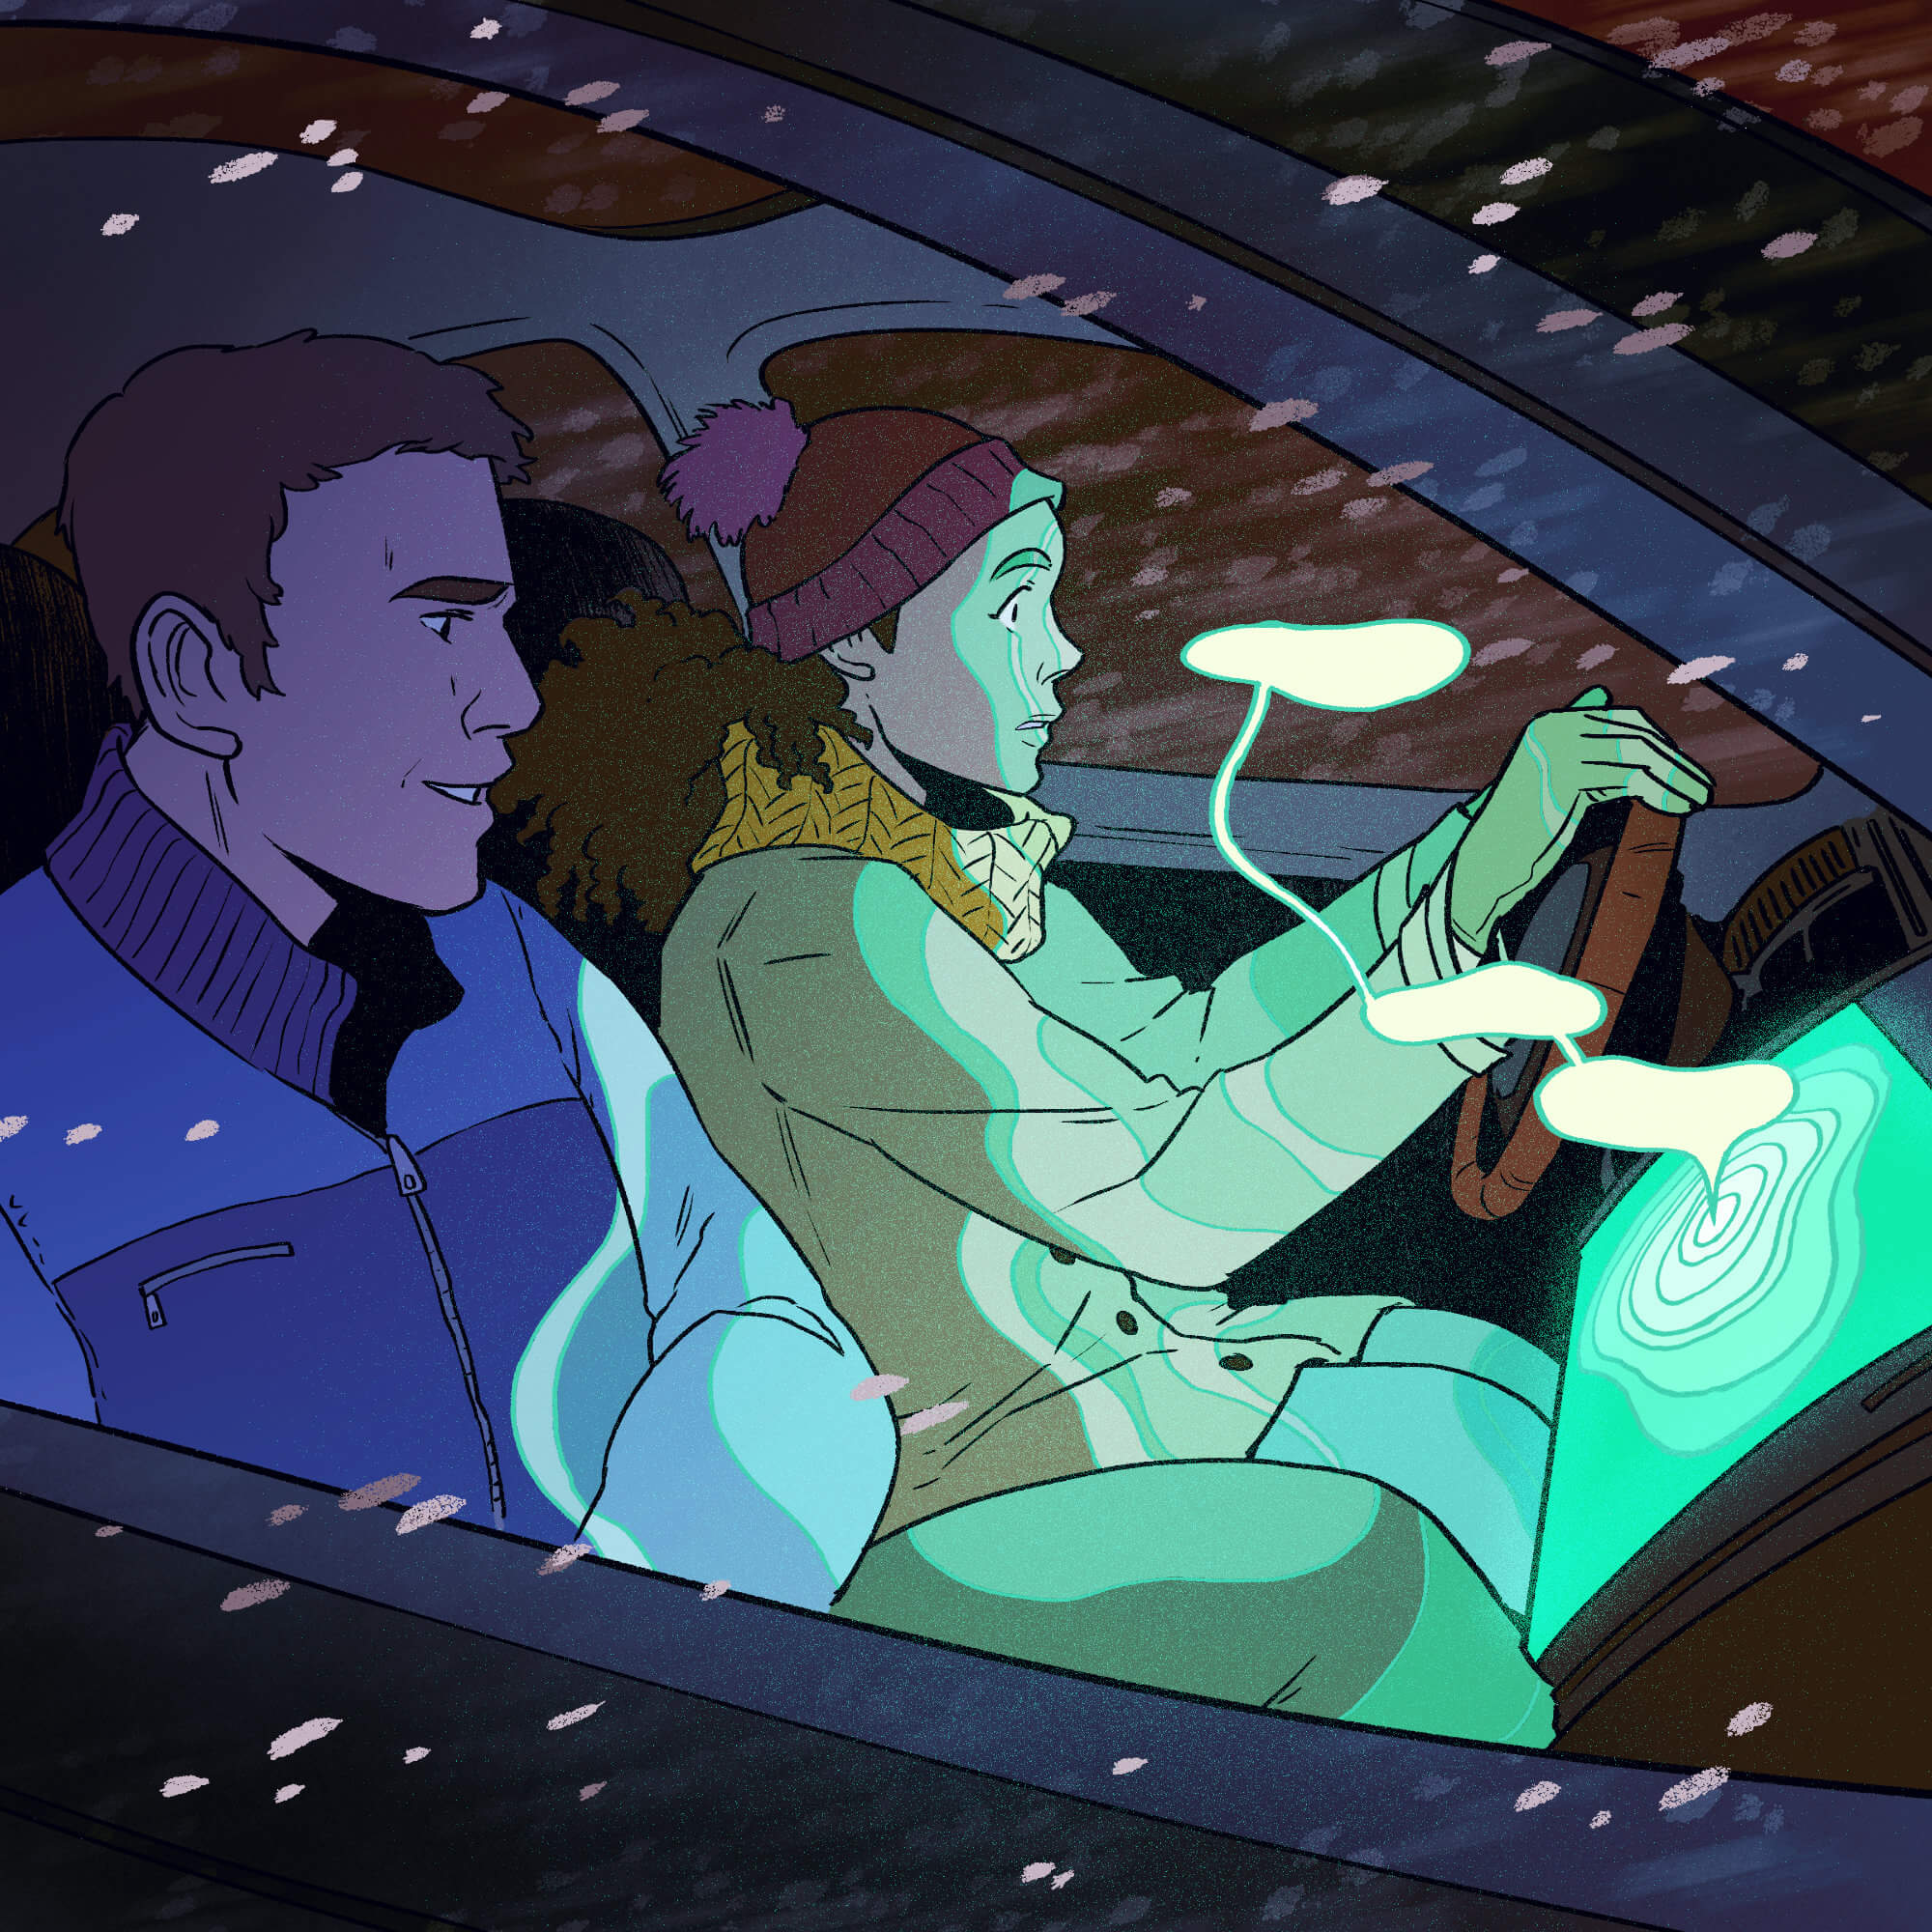 An illustration of a woman driving in a snow storm with a man in the passenger seat while they are illuminated by the intelligent agent guiding them through the storm.